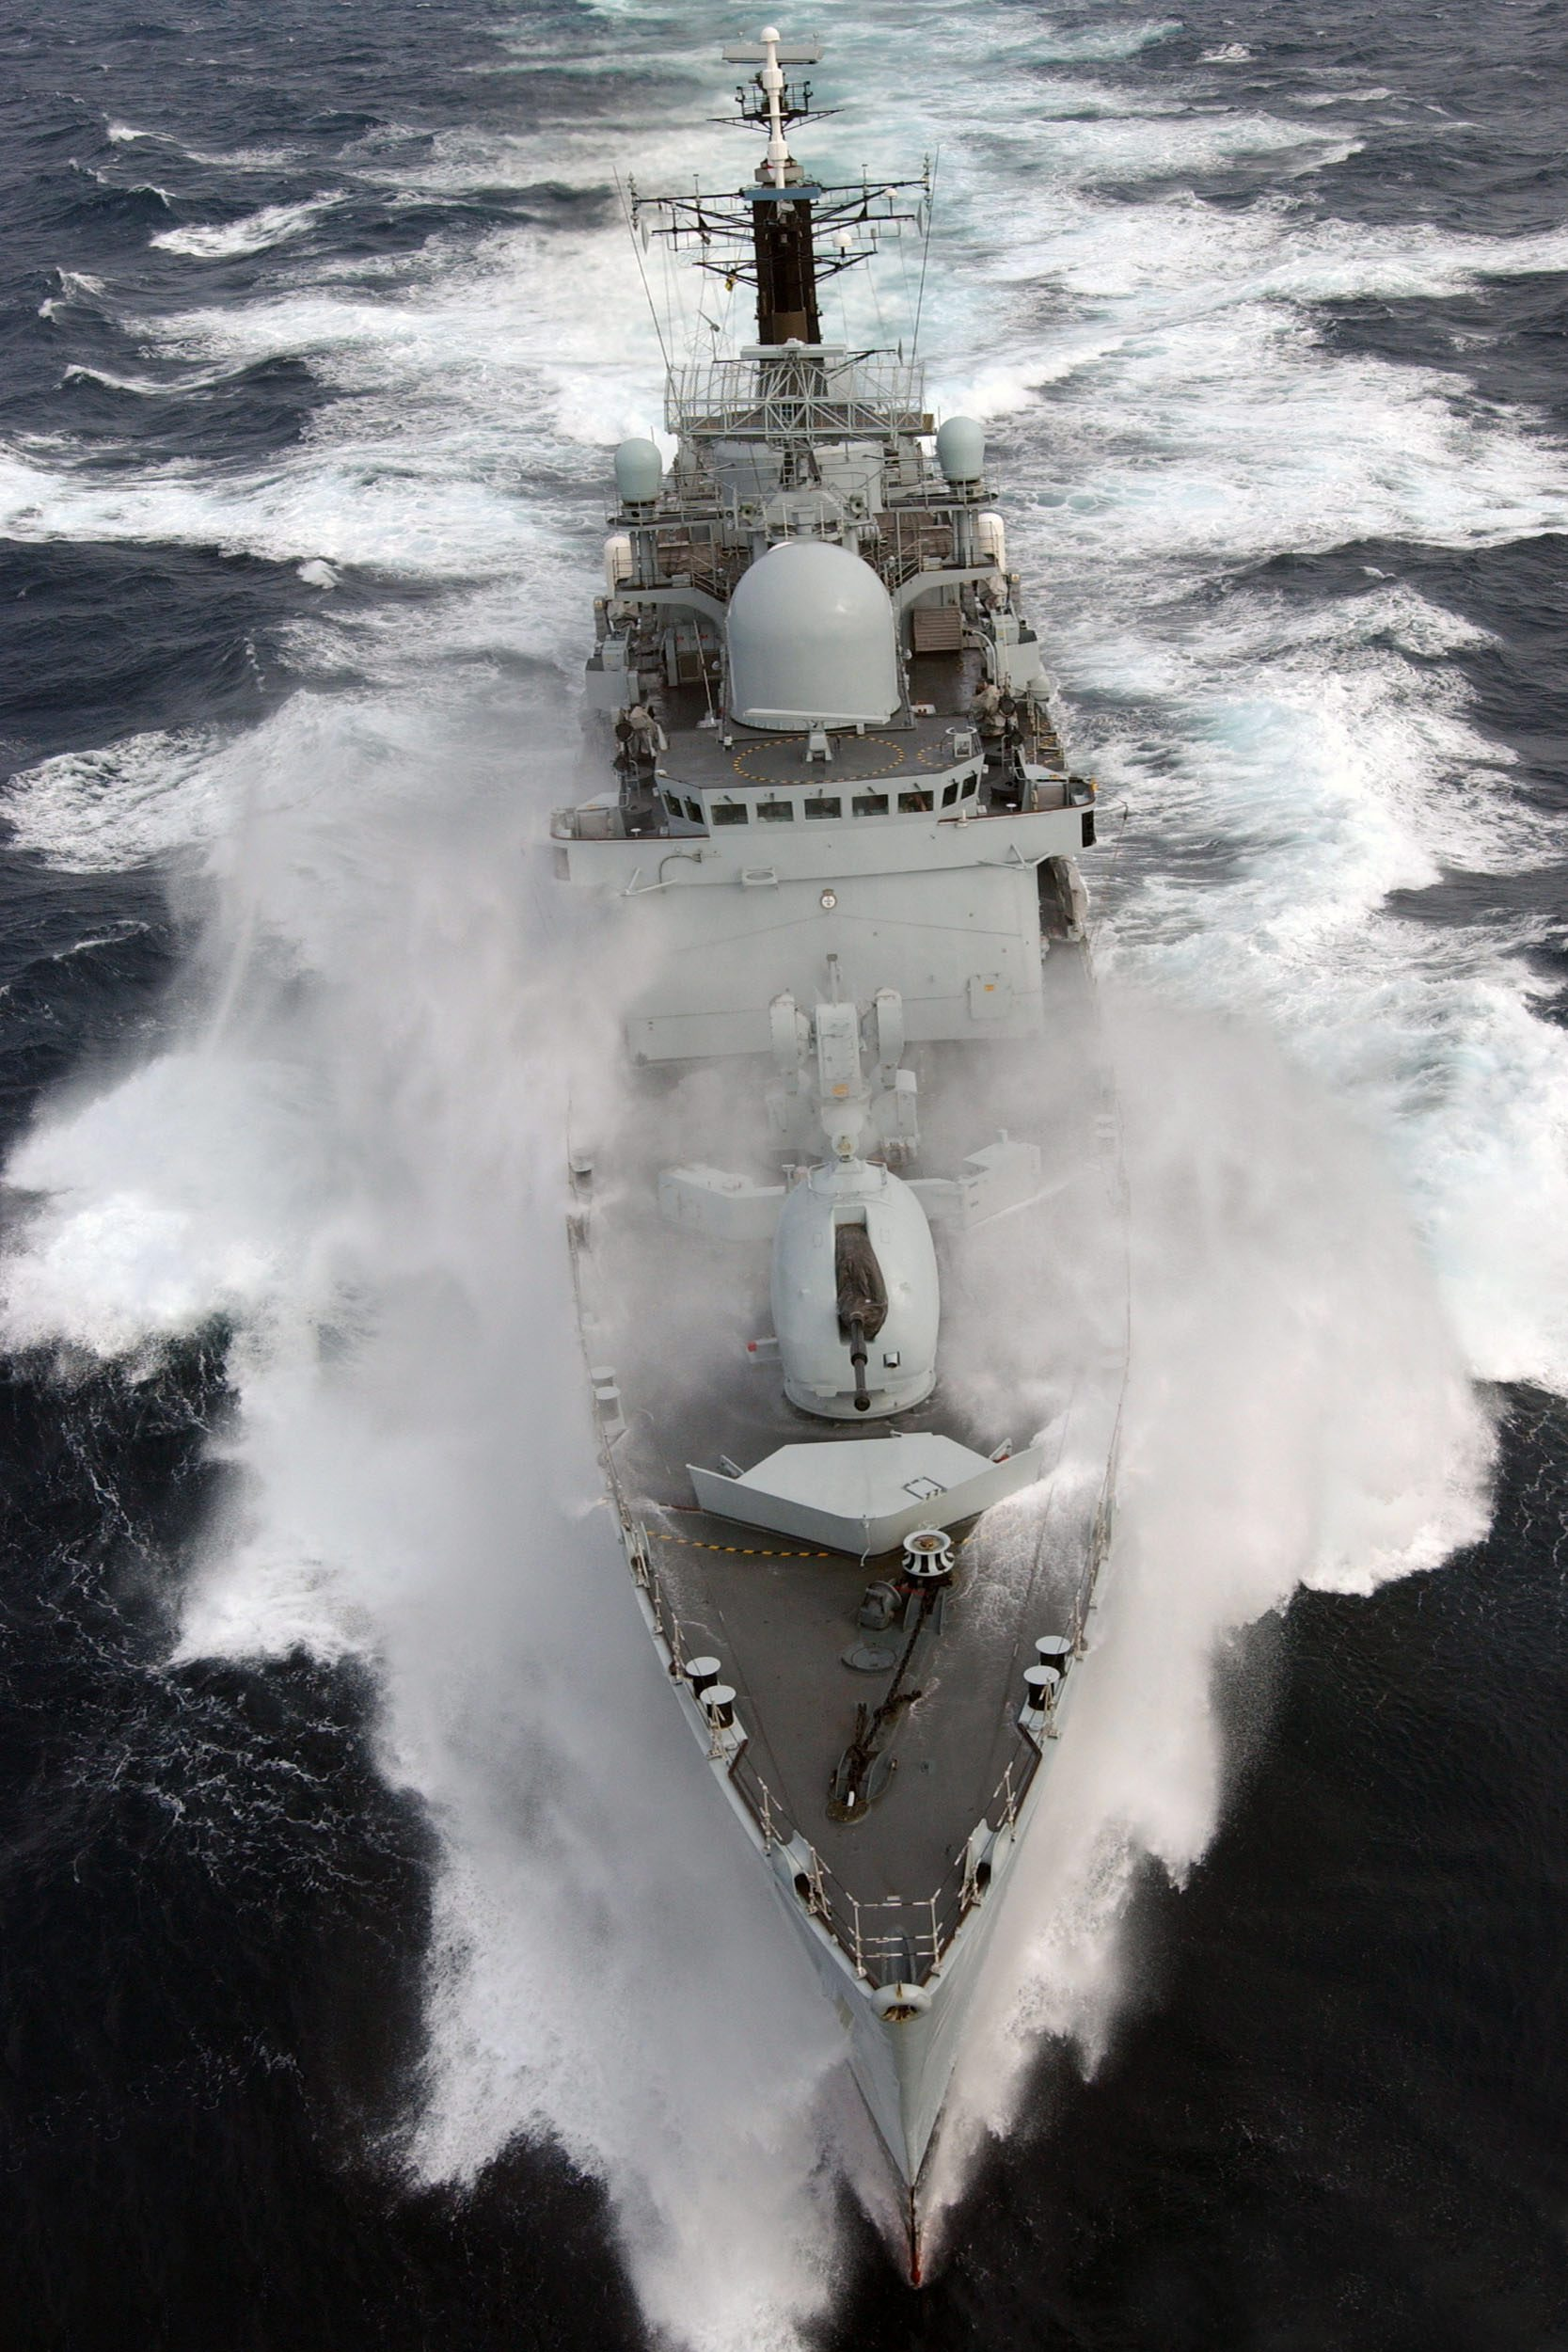 File:HMS Nottingham braves rough Atlantic seas. MOD ...